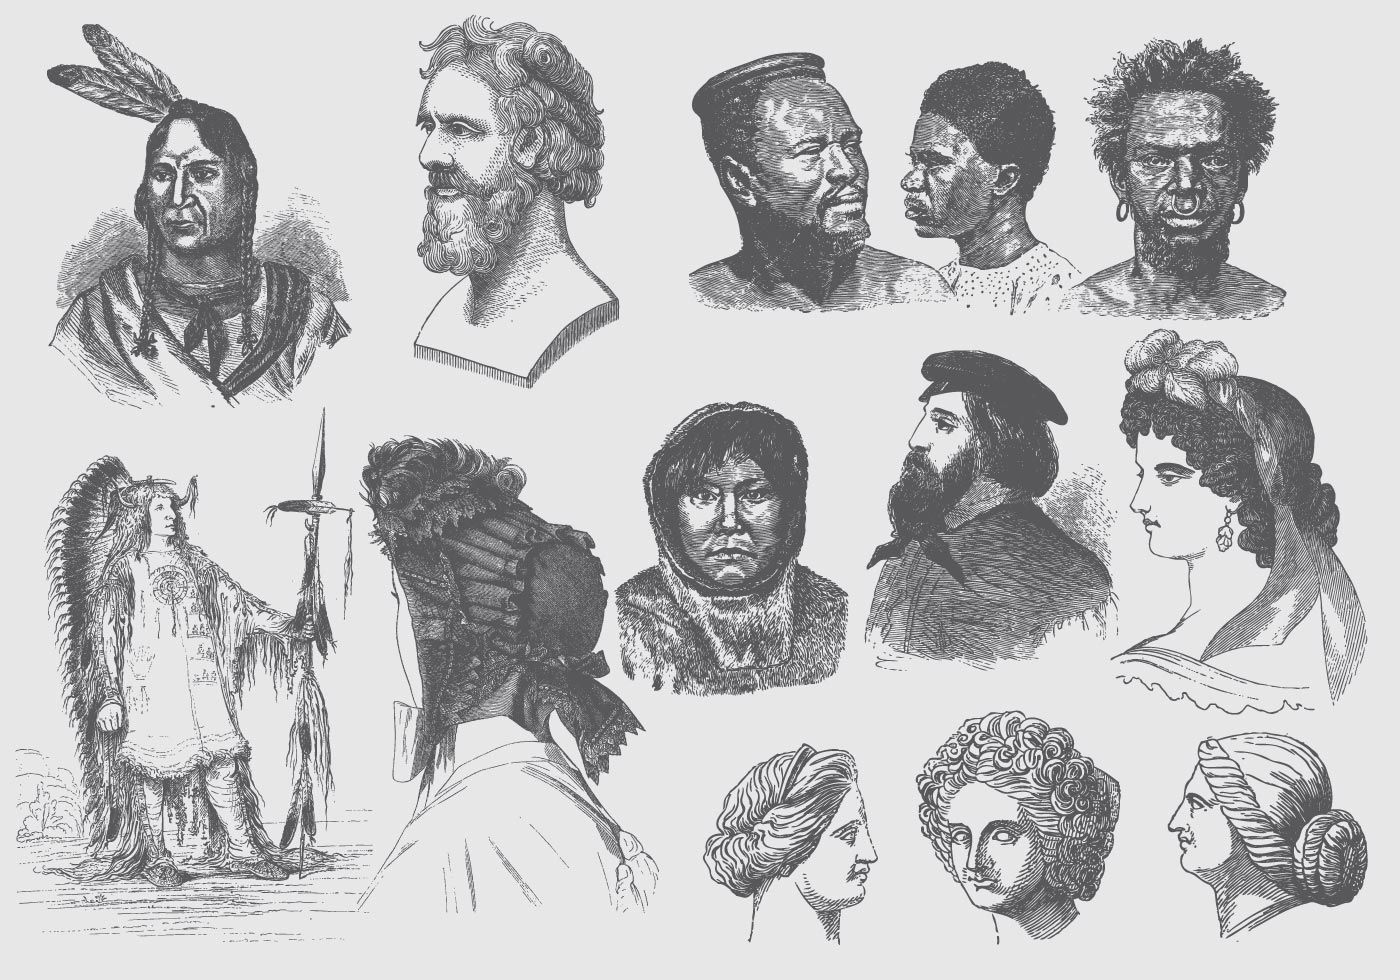 Gray Hairstyles And Headdress Illustrations